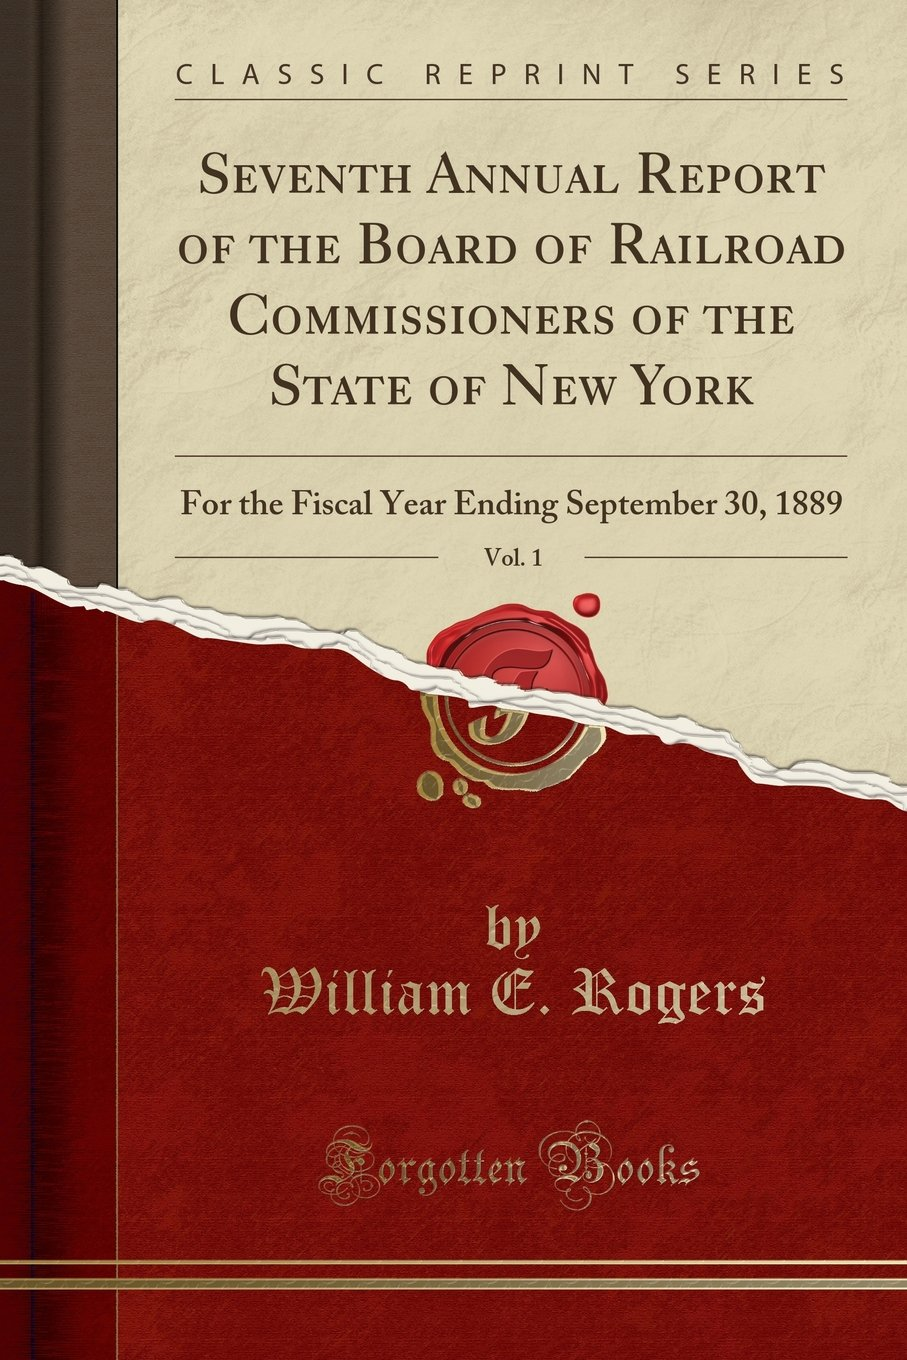 Download Seventh Annual Report of the Board of Railroad Commissioners of the State of New York, Vol. 1: For the Fiscal Year Ending September 30, 1889 (Classic Reprint) pdf